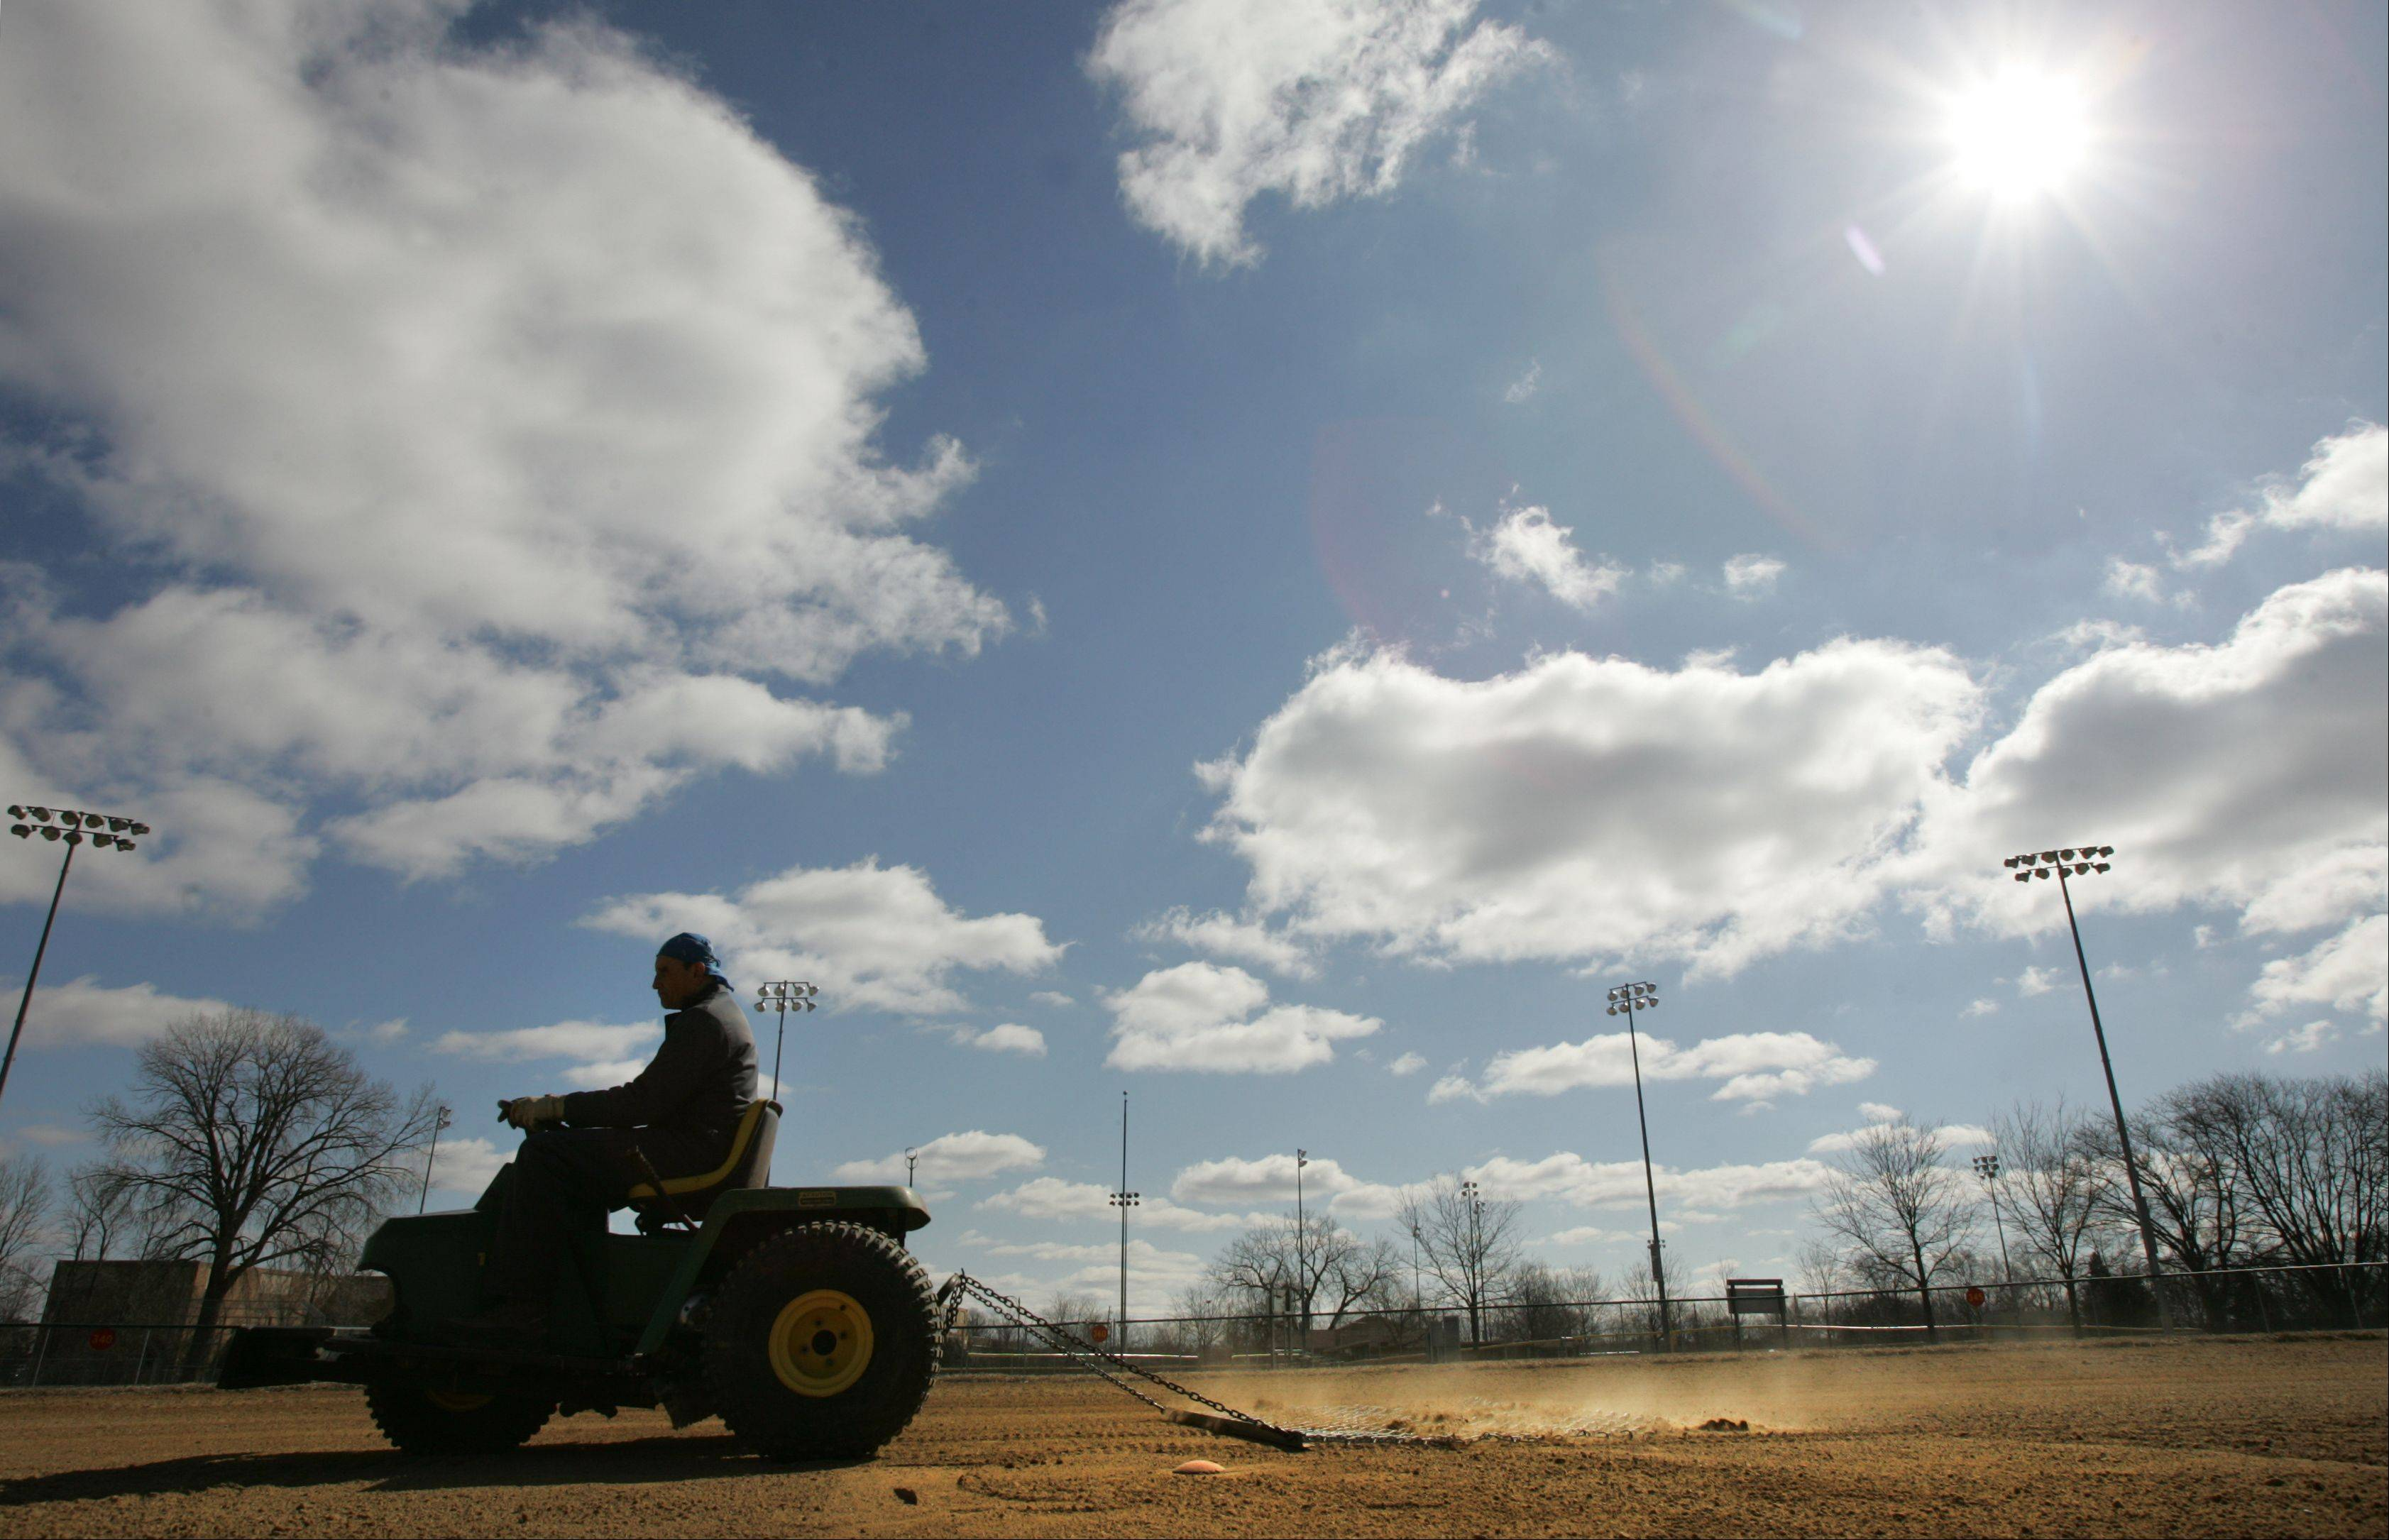 Elgin public works department employee Bill Rodriguez preps a ball diamond Monday morning in anticipation of a St. Edward Catholic High School baseball game later that day in Wing Park on Elgin�s northwest side.